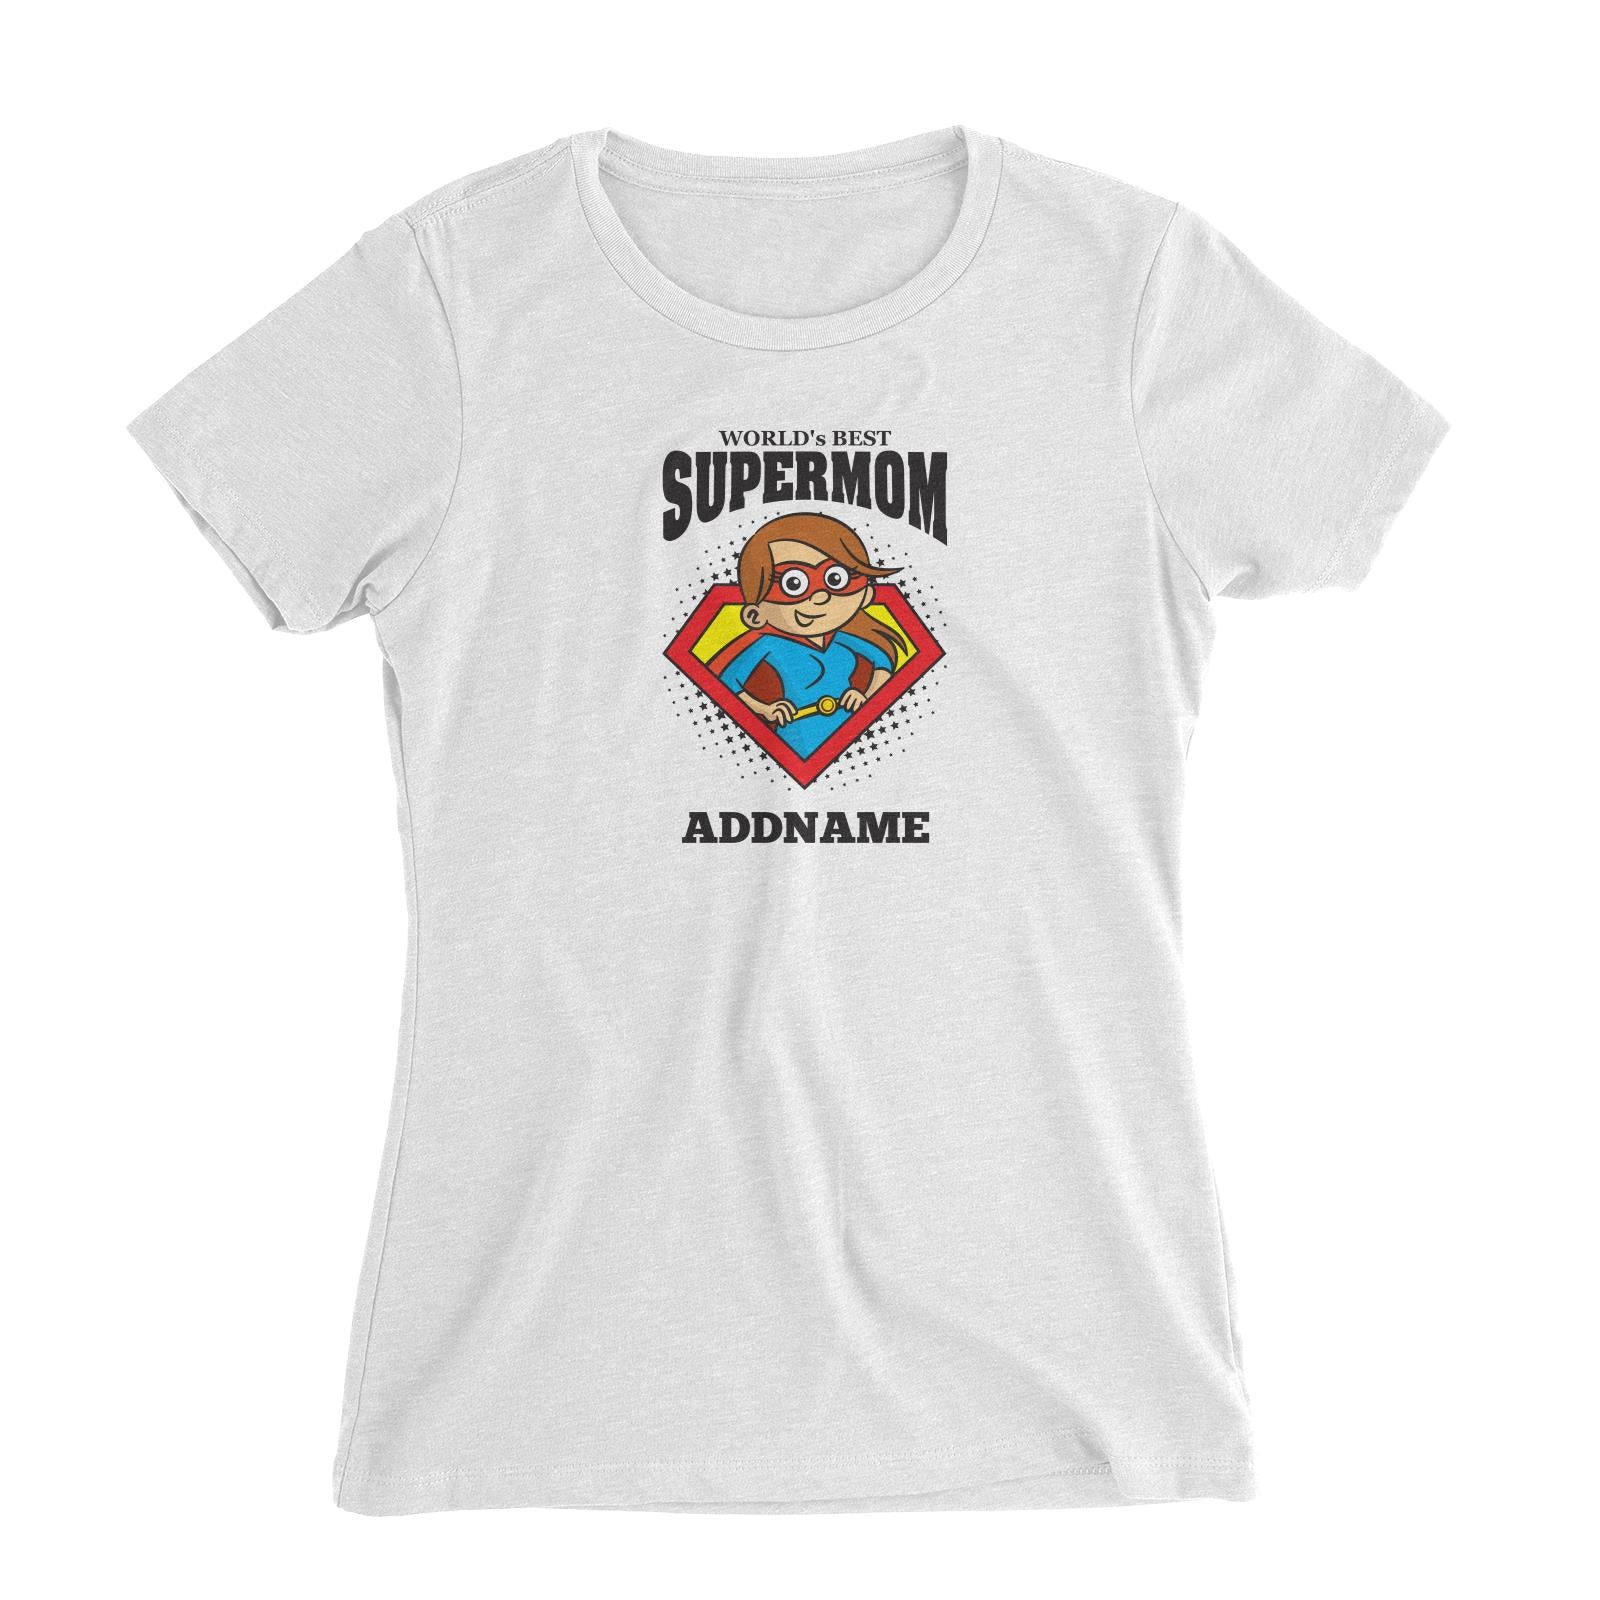 Best Mom Supermom (FLASH DEAL) Women Slim Fit T-Shirt Personalizable Designs Matching Family Superhero Family Edition Superhero